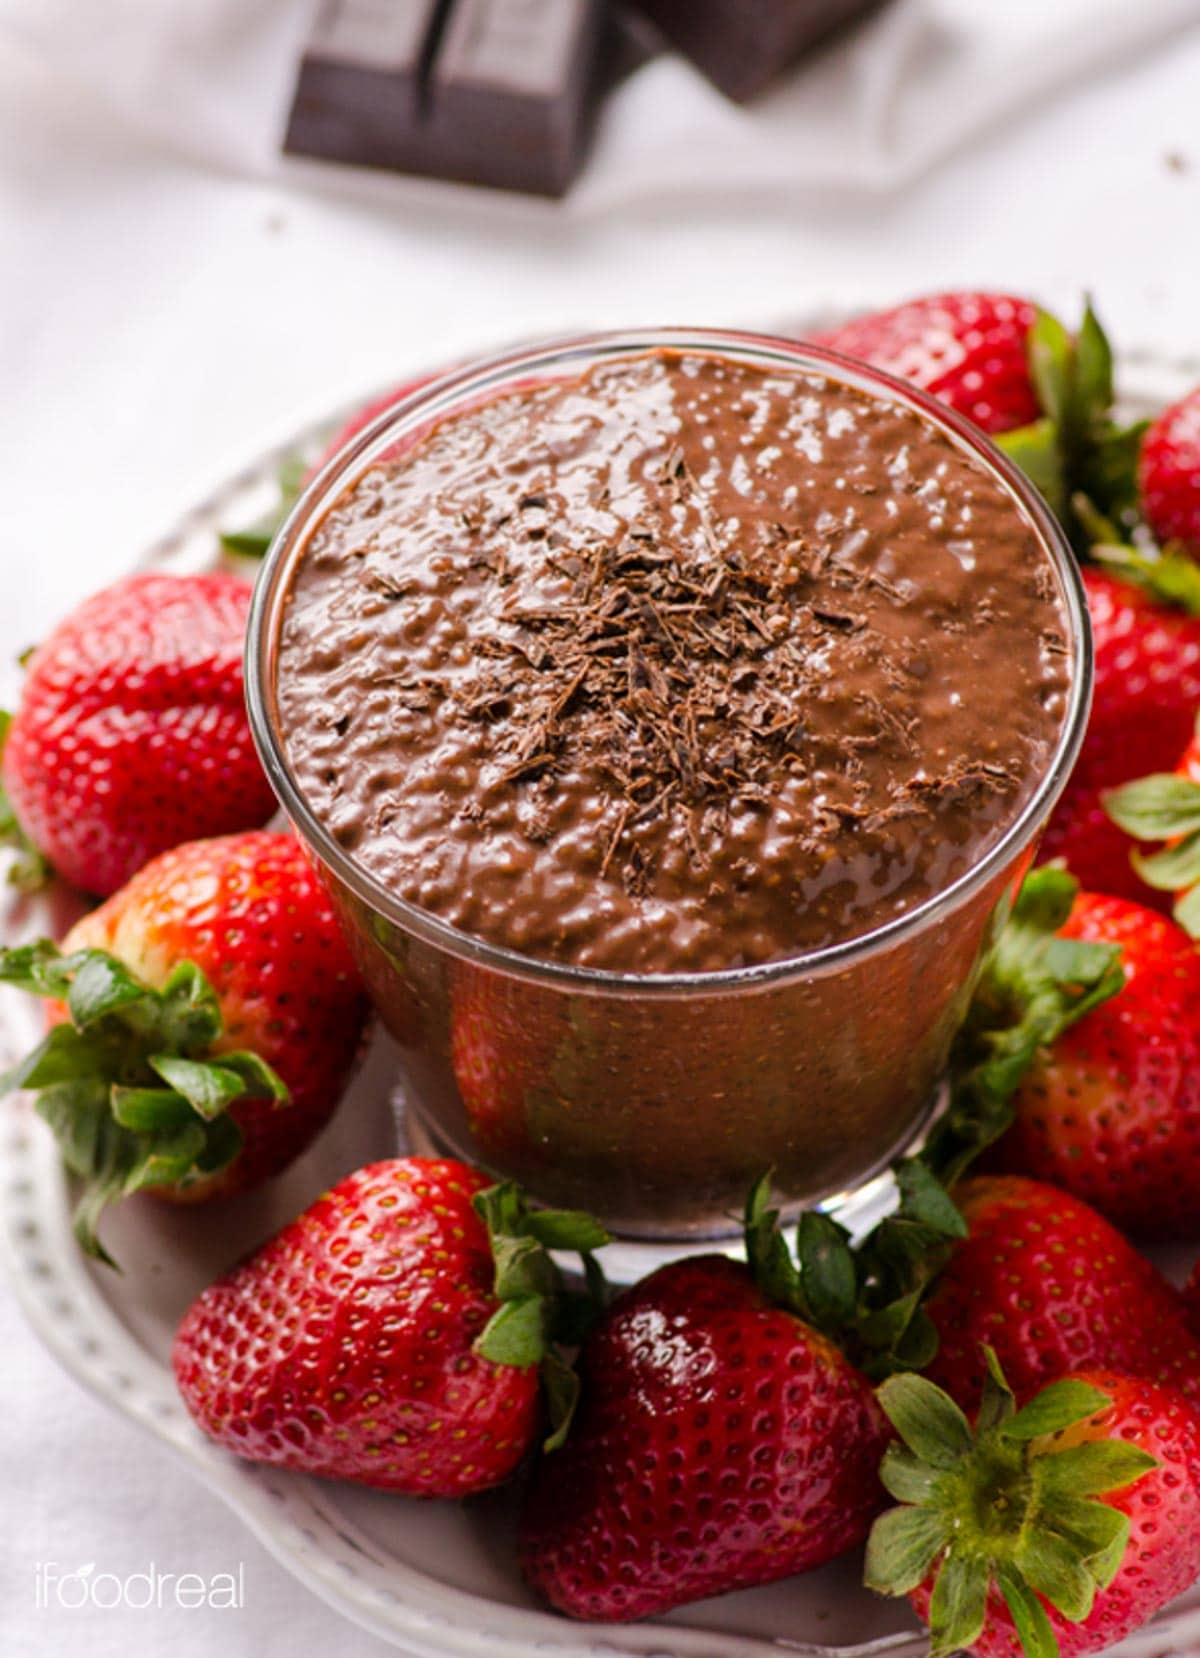 10 Minute Chocolate Chia Pudding Recipe that tastes like dessert with nutrition of a breakfast. Refrigerate for up to 5 days for easy breakfast or snack on the go.